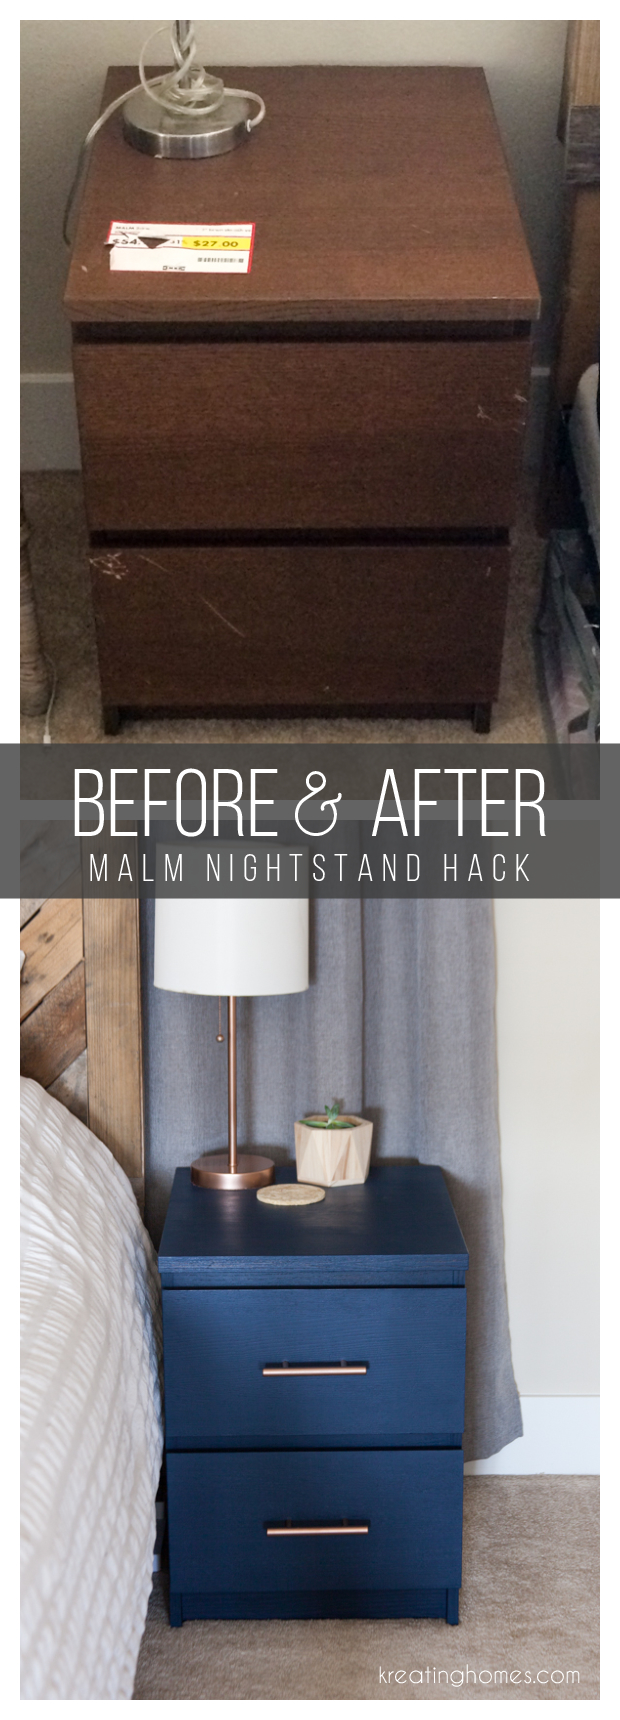 MALM Nightstand Hack